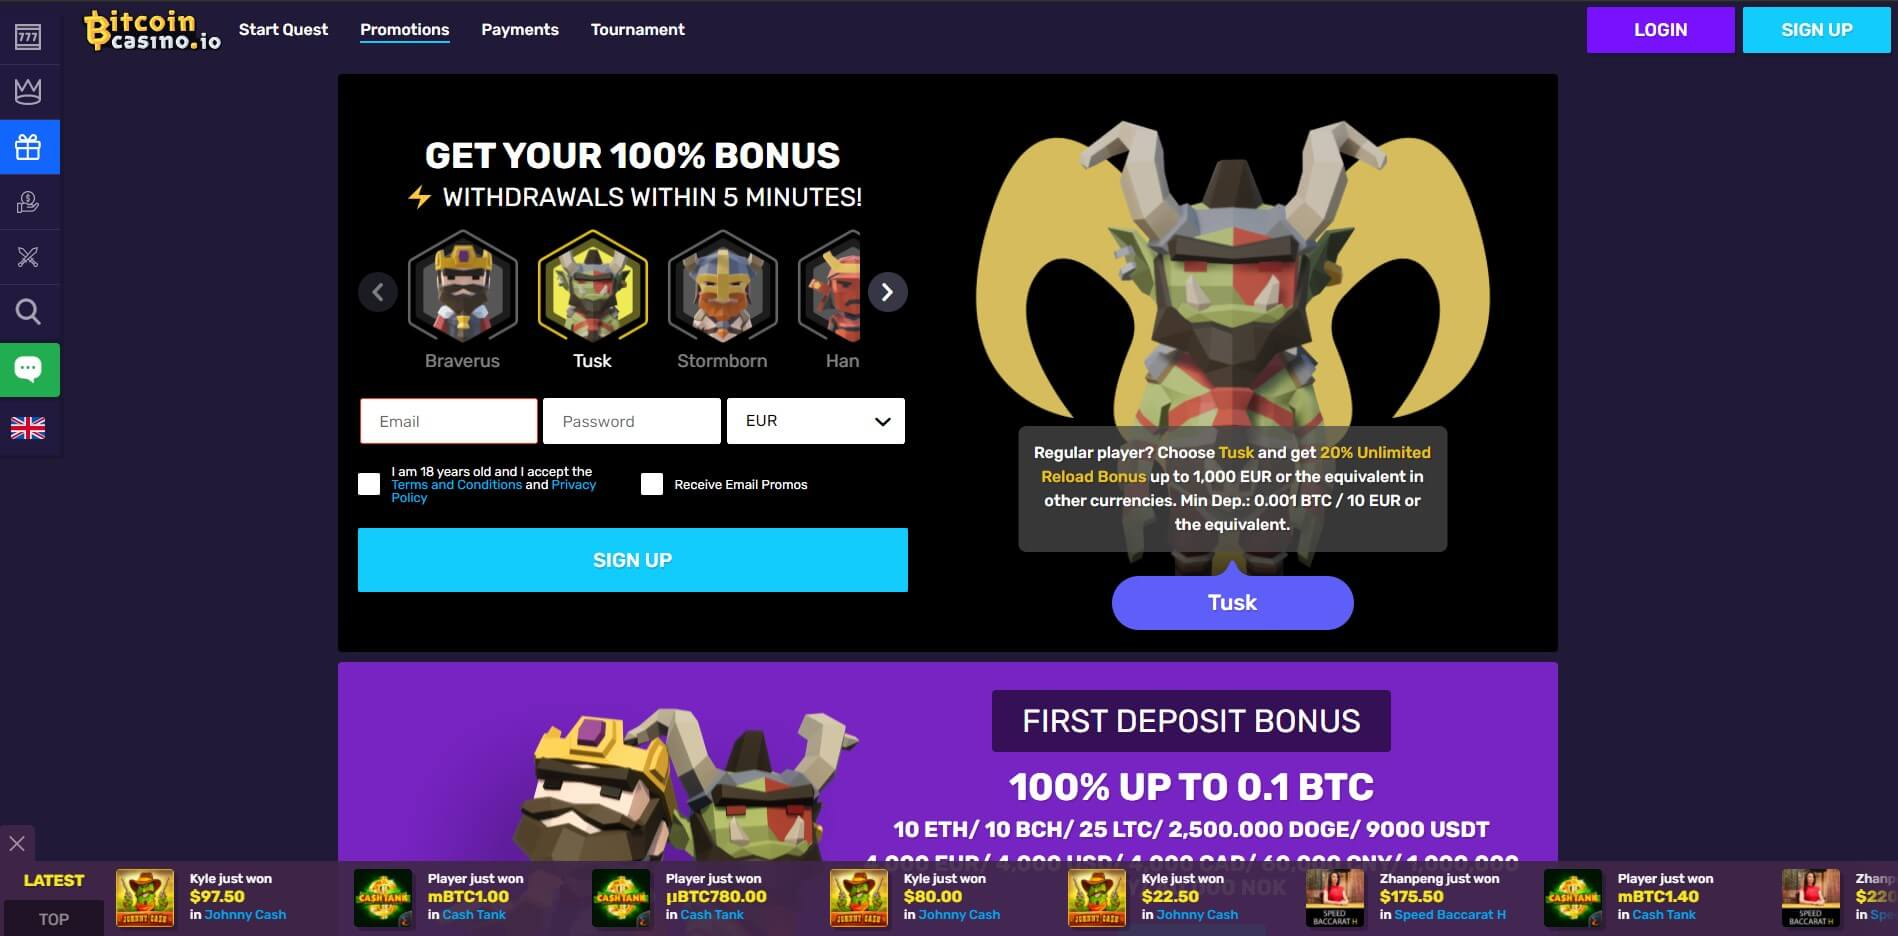 Promotions at Bitcoin Casino